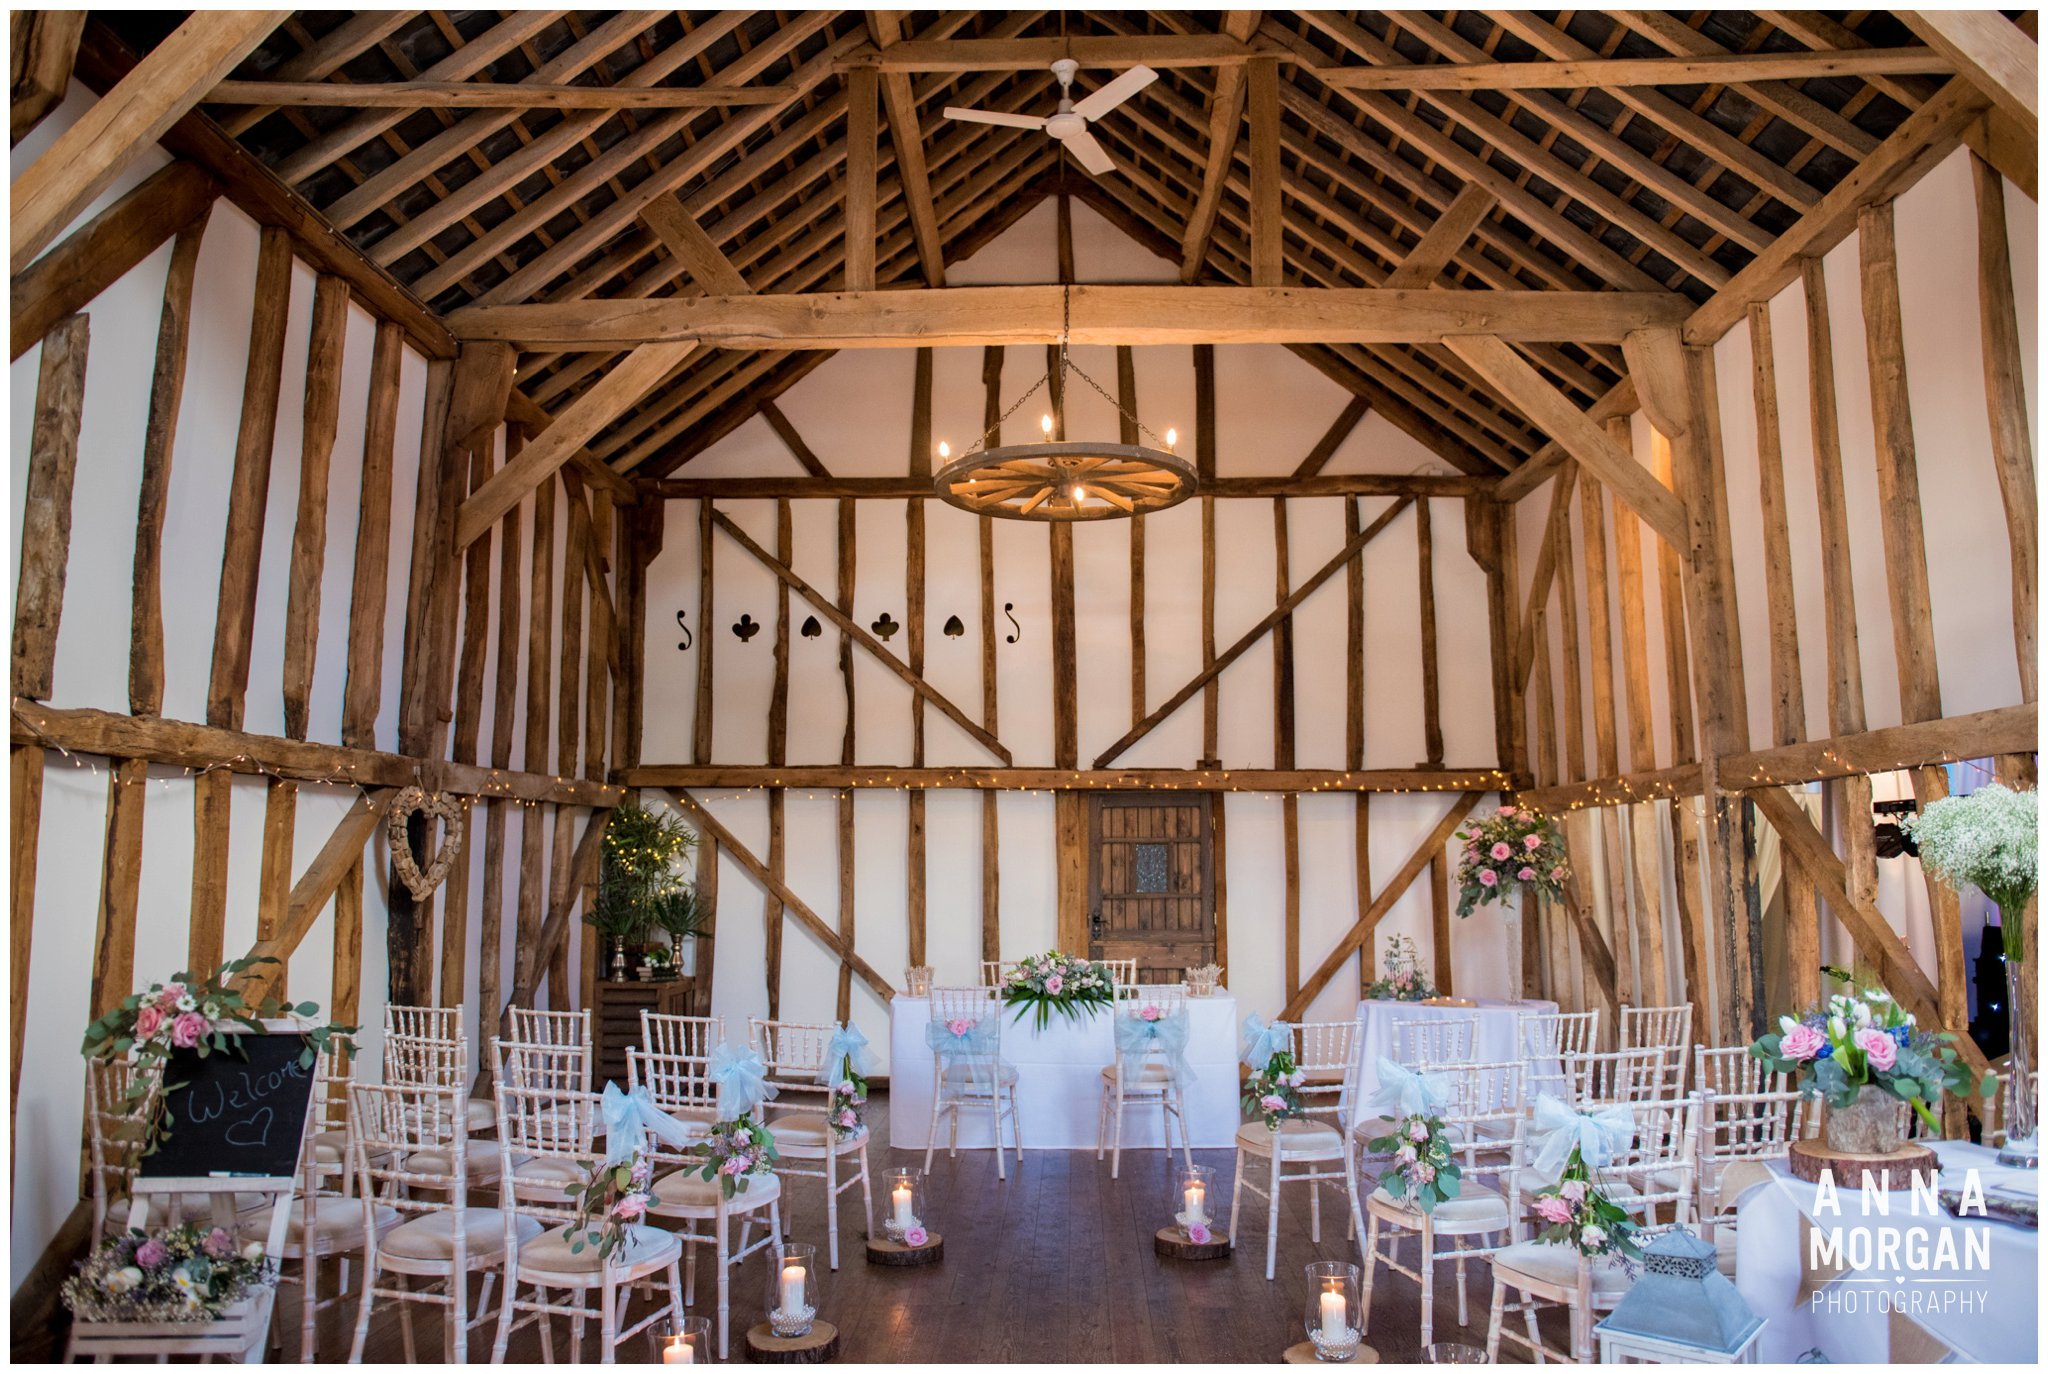 Pitt Hall Barn 2016 Spring Open Day  Hampshire Wedding